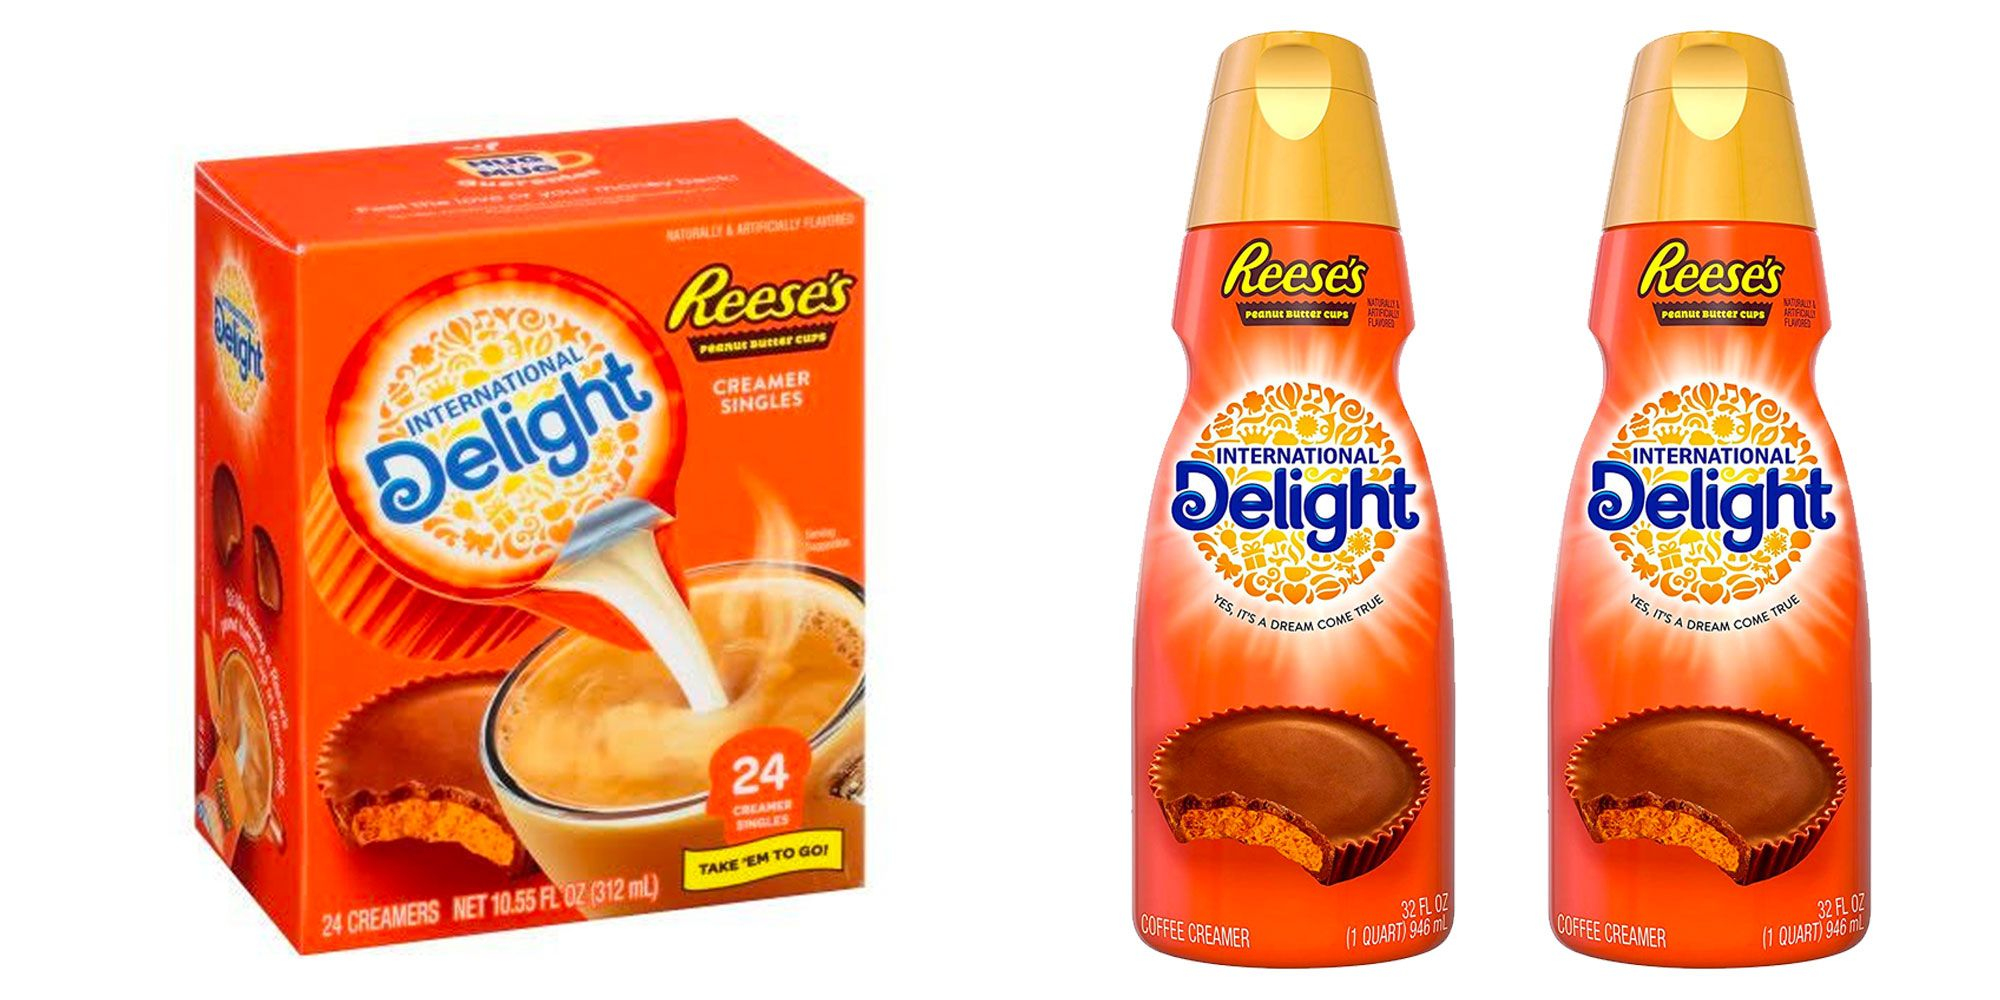 International Delight Made A Reese's-Flavored Coffee Creamer